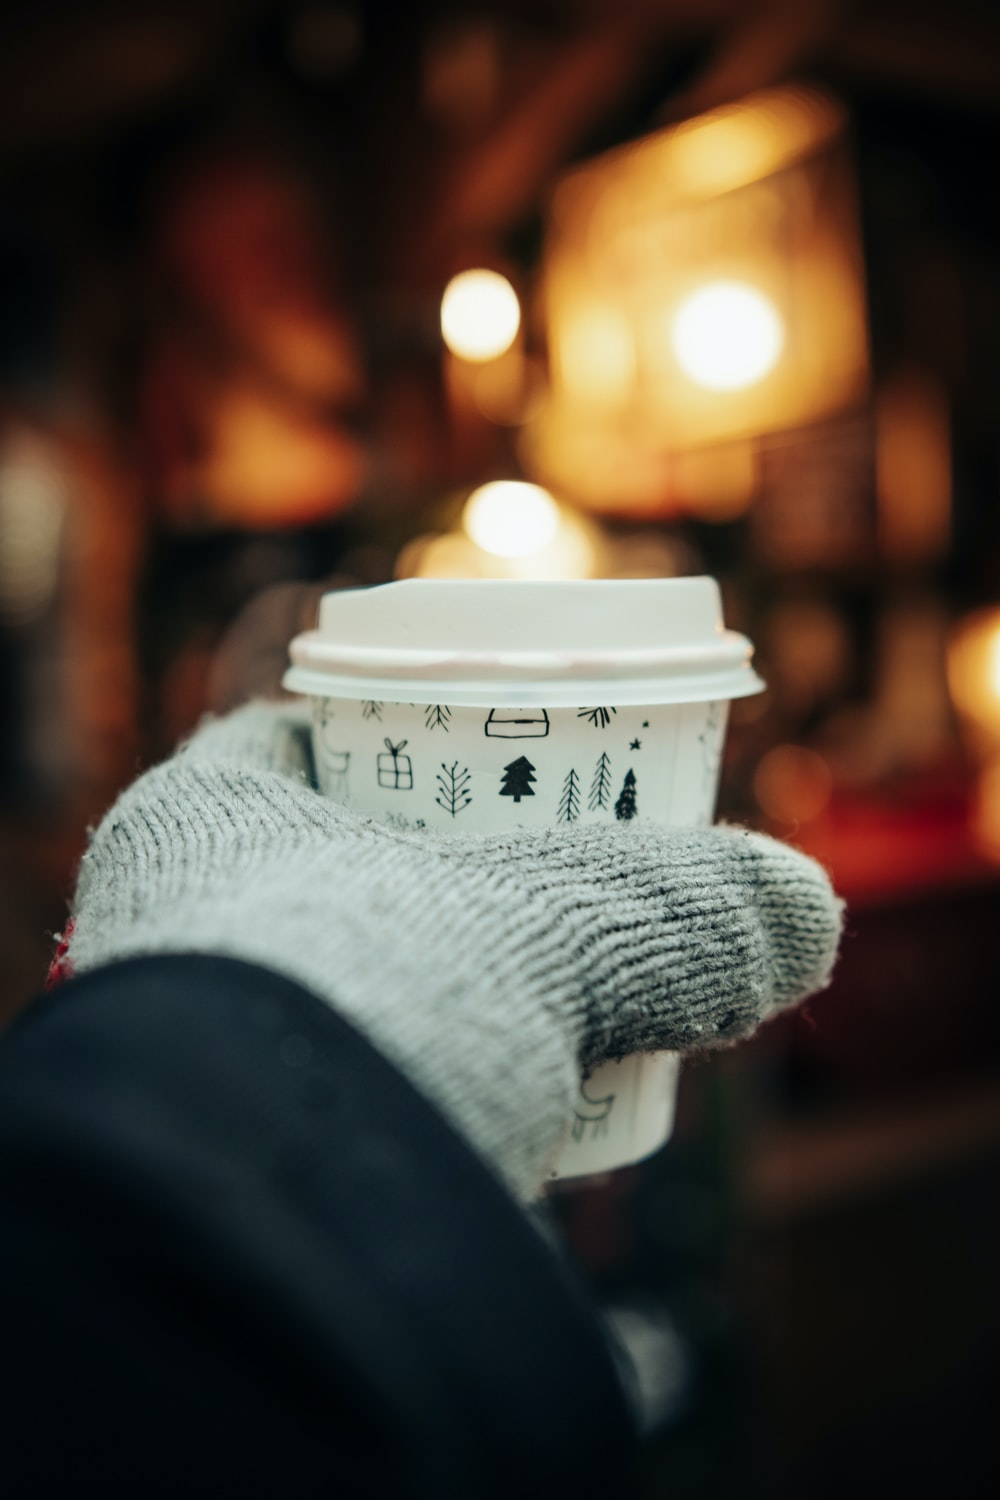 person in gray knit sweater holding white cup